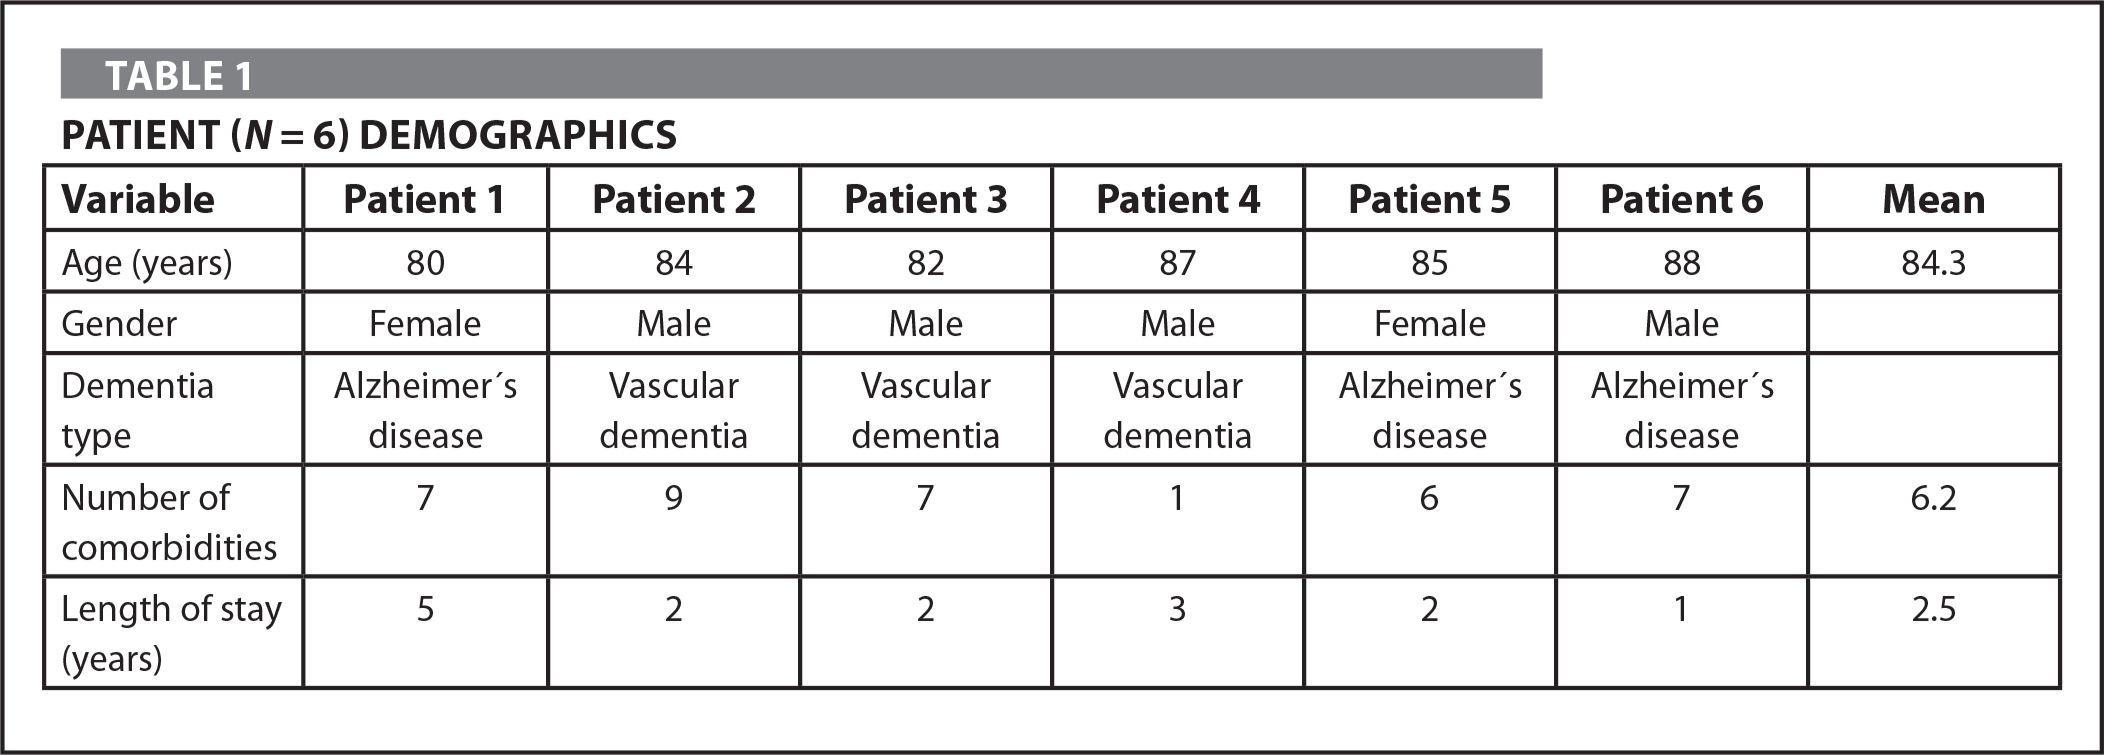 Patient (N = 6) Demographics